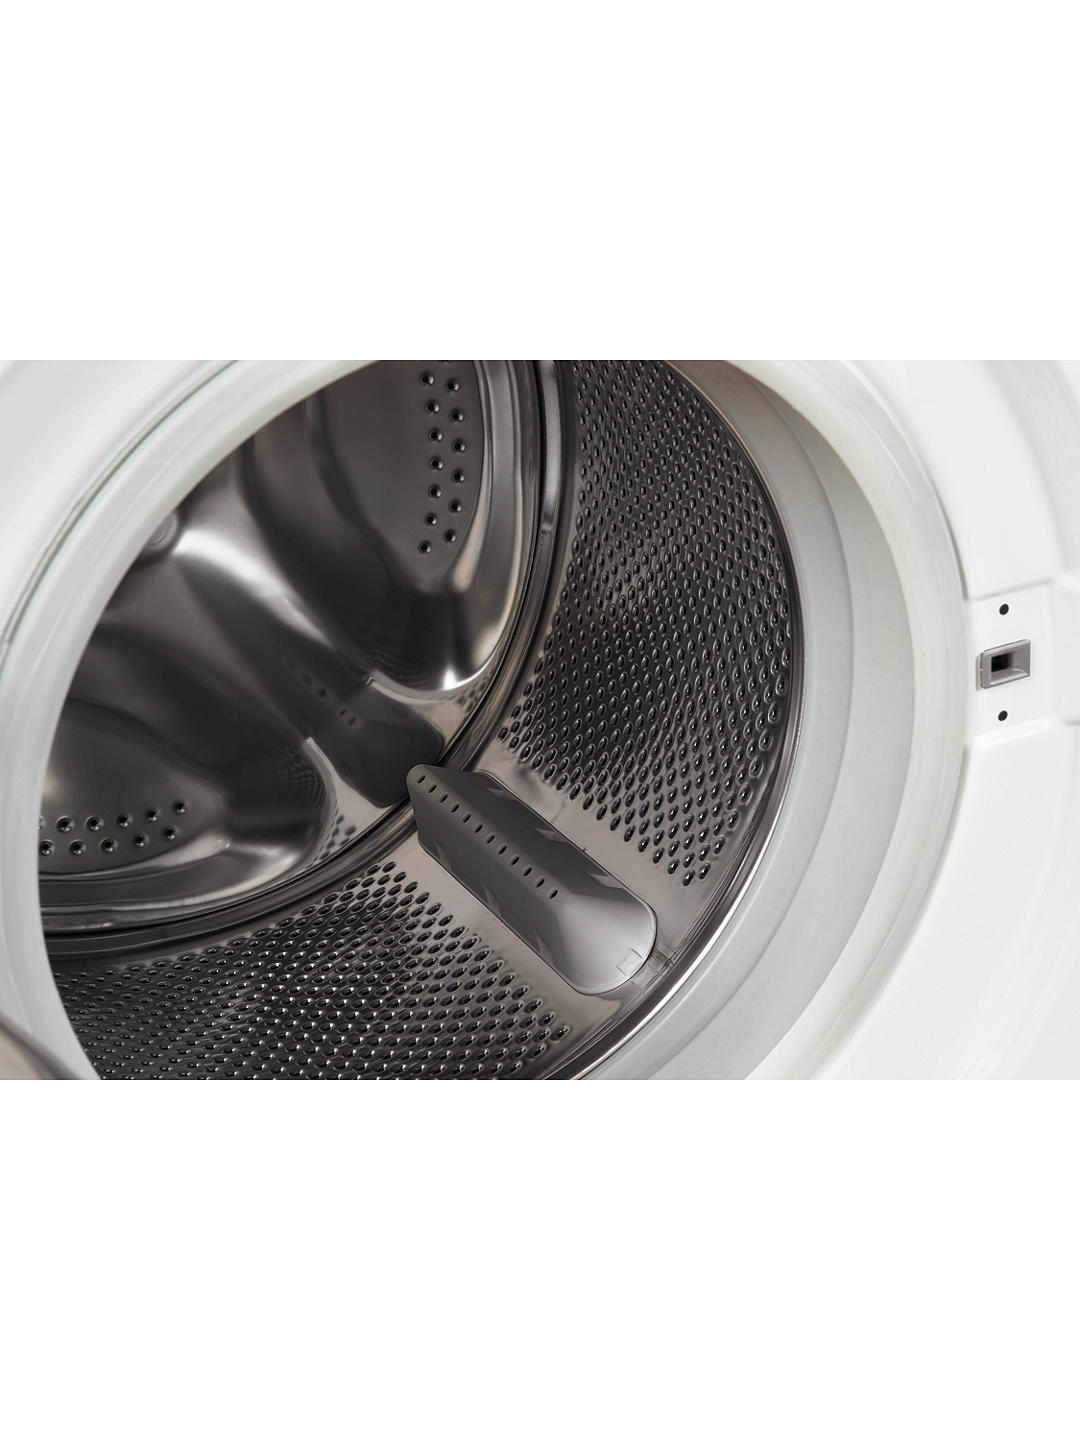 Buy Indesit Innex BWE 71452 W Freestanding Washing Machine, 7kg Load, A+++ Energy Rating, 1400rpm Spin, White Online at johnlewis.com